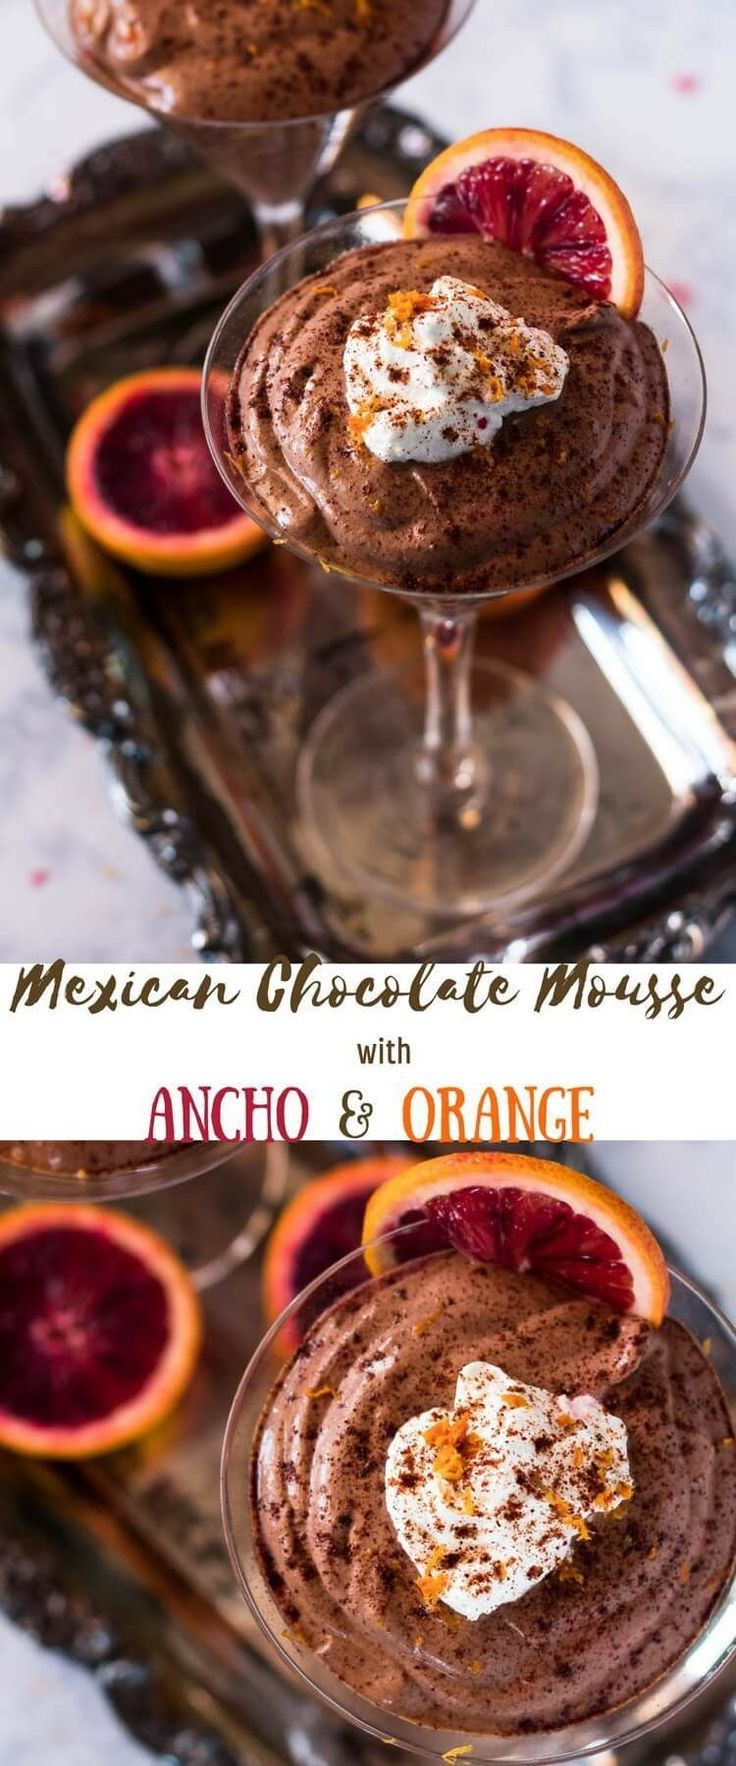 Mexican Chocolate Mousse - Mexican Chocolate Mousse With Ancho and Orange combines the luscious flavor of Mexican chocolate with Triple Sec and a hint of ancho chile powder in a fluffy, creamy mousse! A sweet treat that's hard to beat, and not a lot of ef